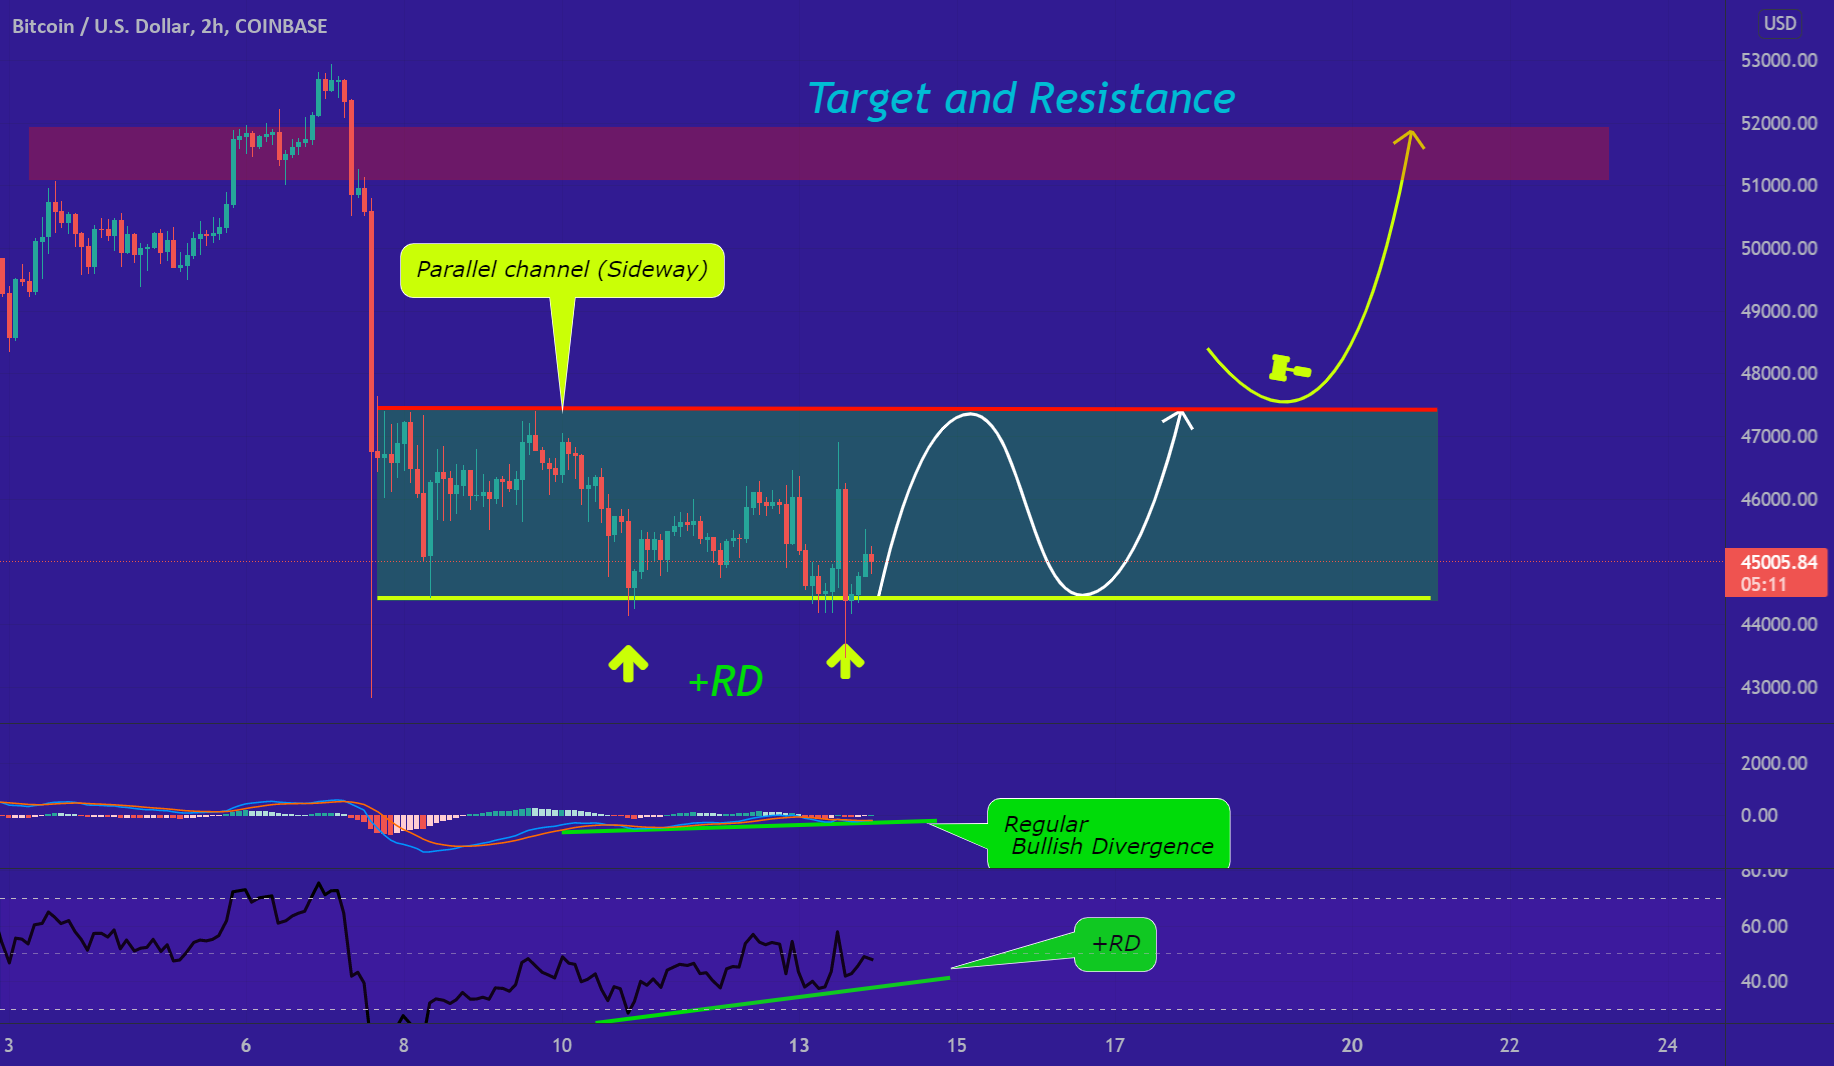 BTC's Sideway Trend Explained for COINBASE:BTCUSD by T_V_TreeTrader